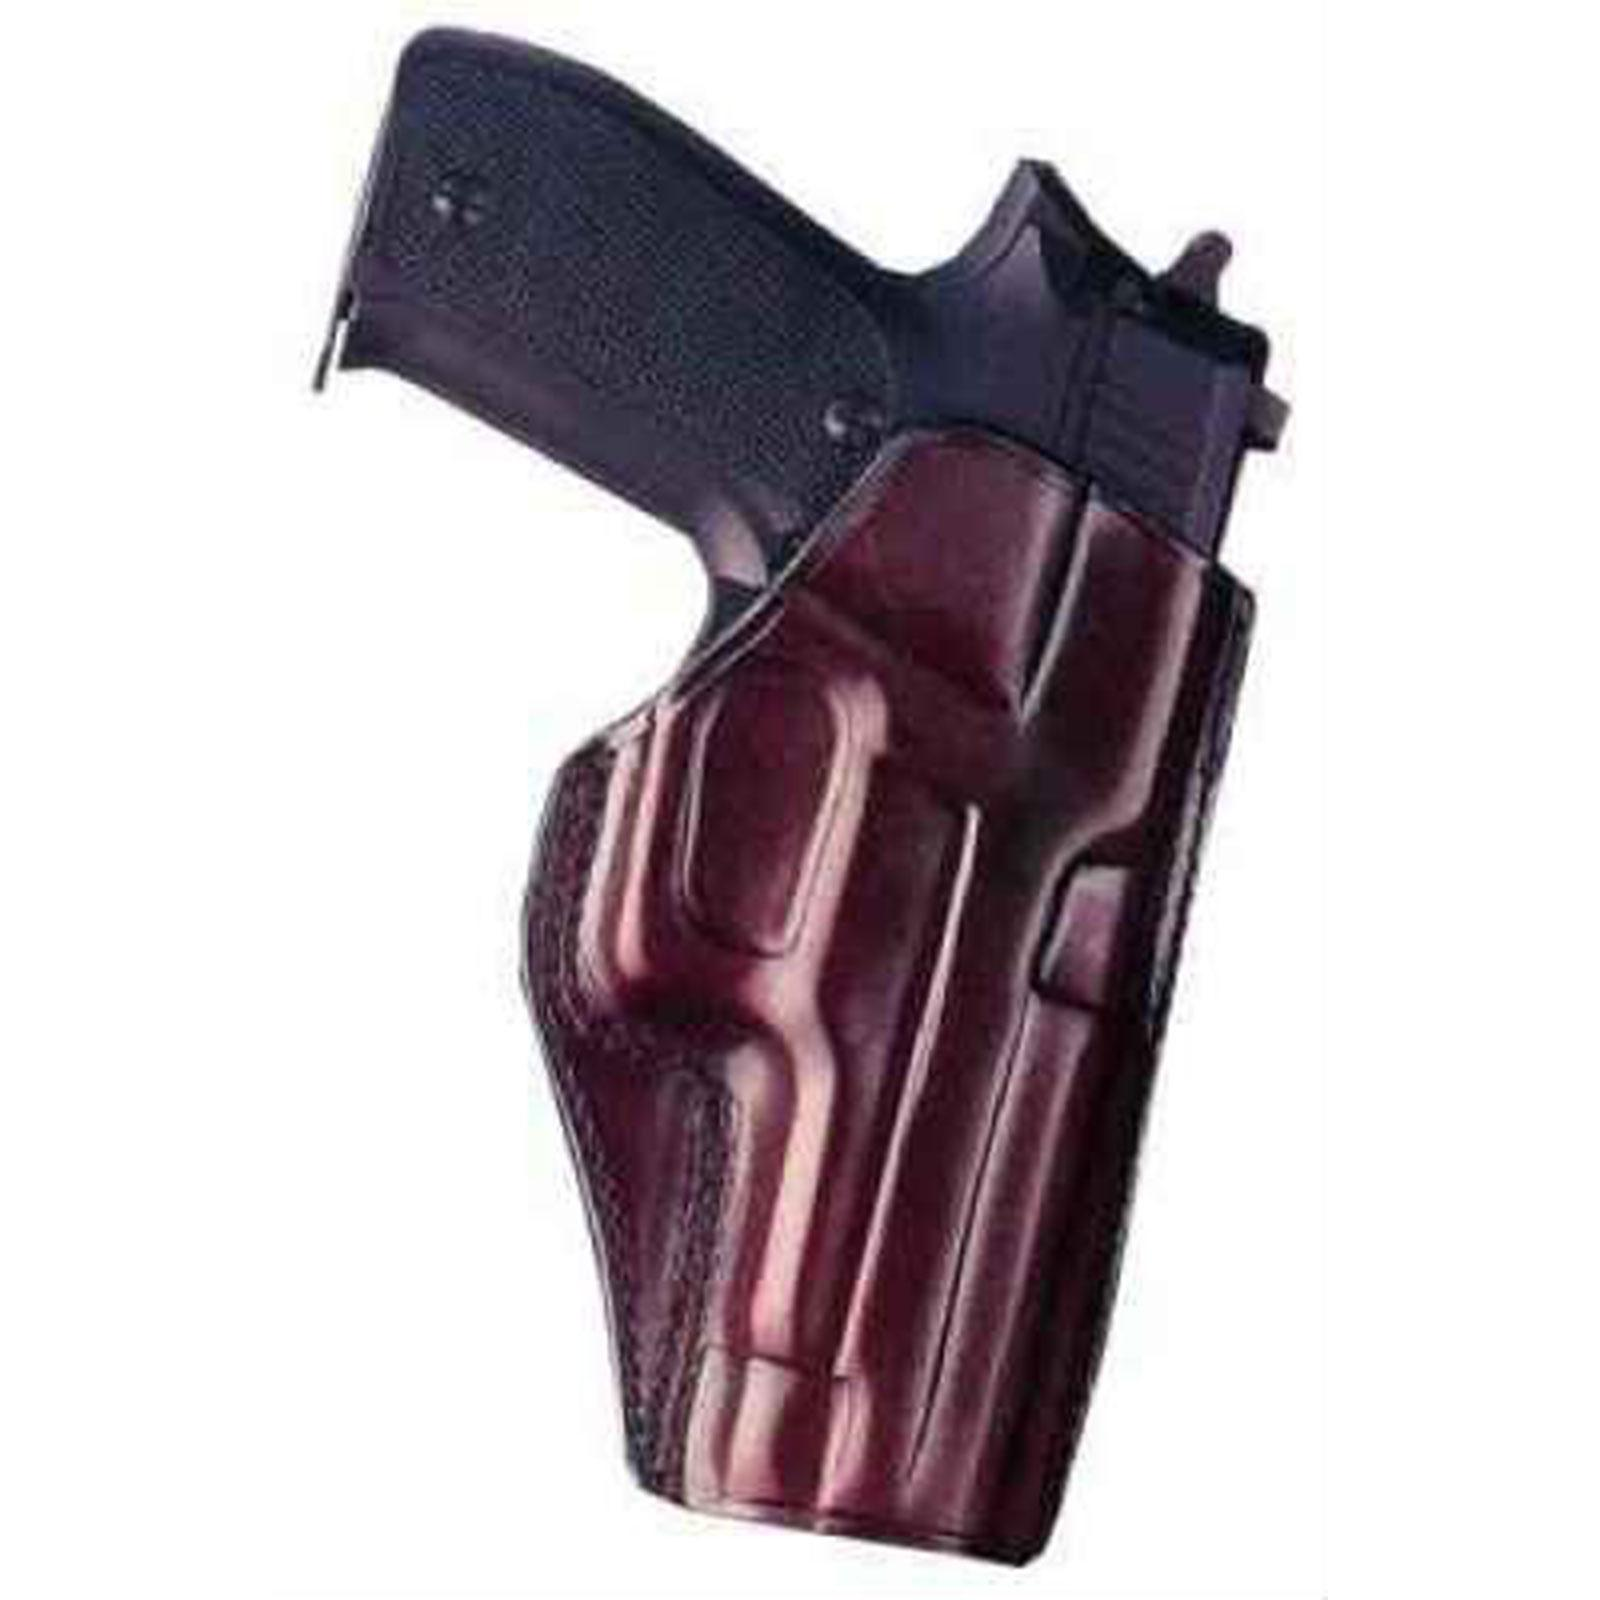 Galco Leather CCP Concealed Carry Paddle RH Havana CCP424H by Galco